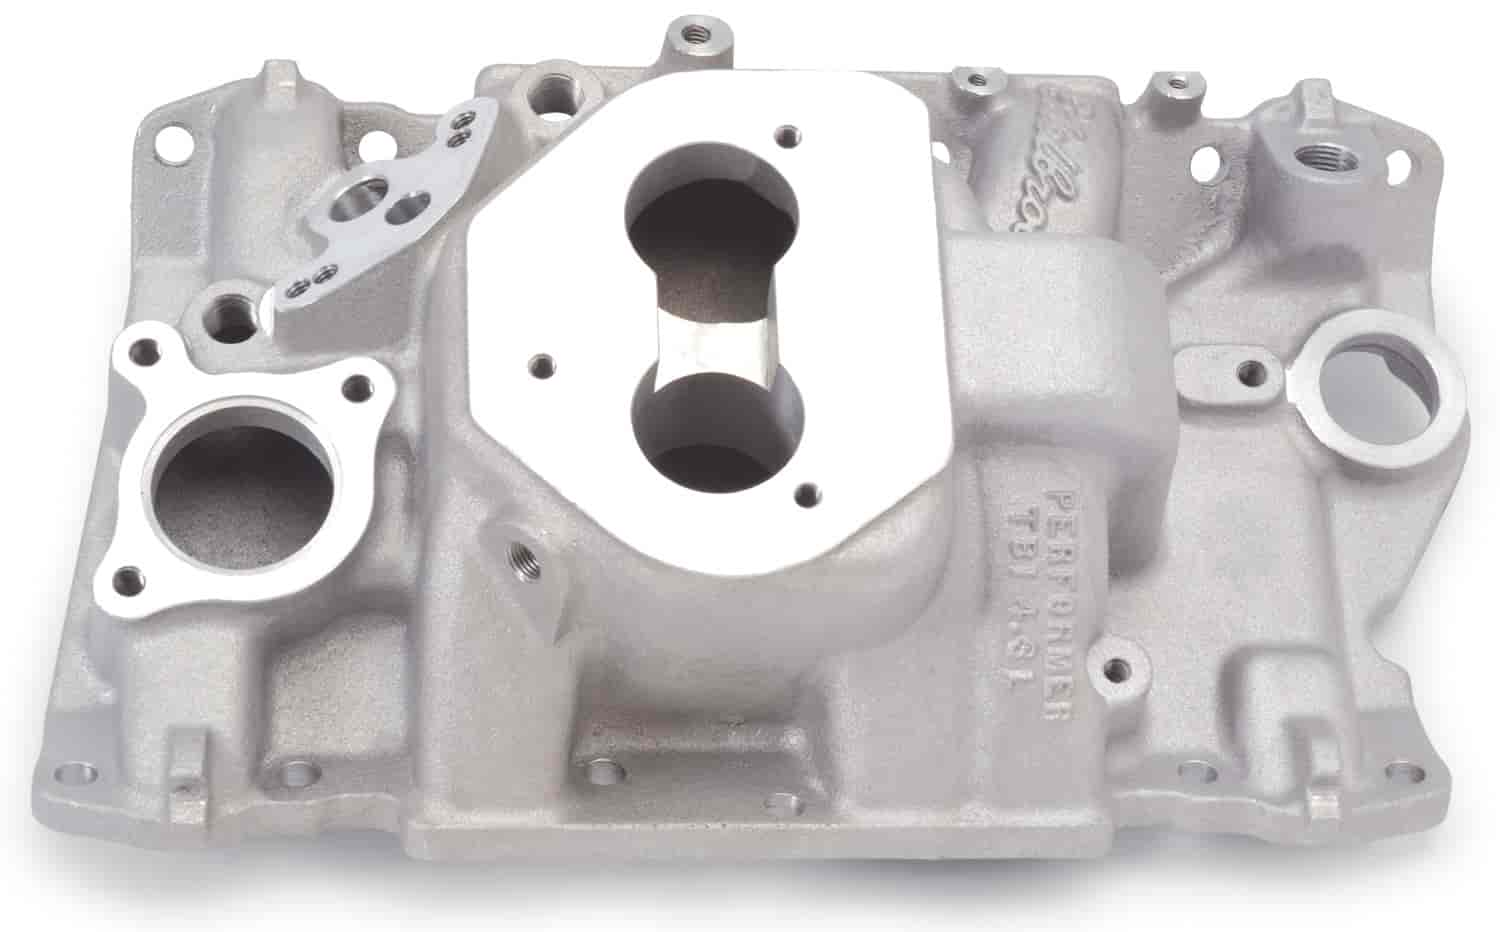 Edelbrock 3713 - Edelbrock Performer Manifolds and Kits for Chevrolet TBI